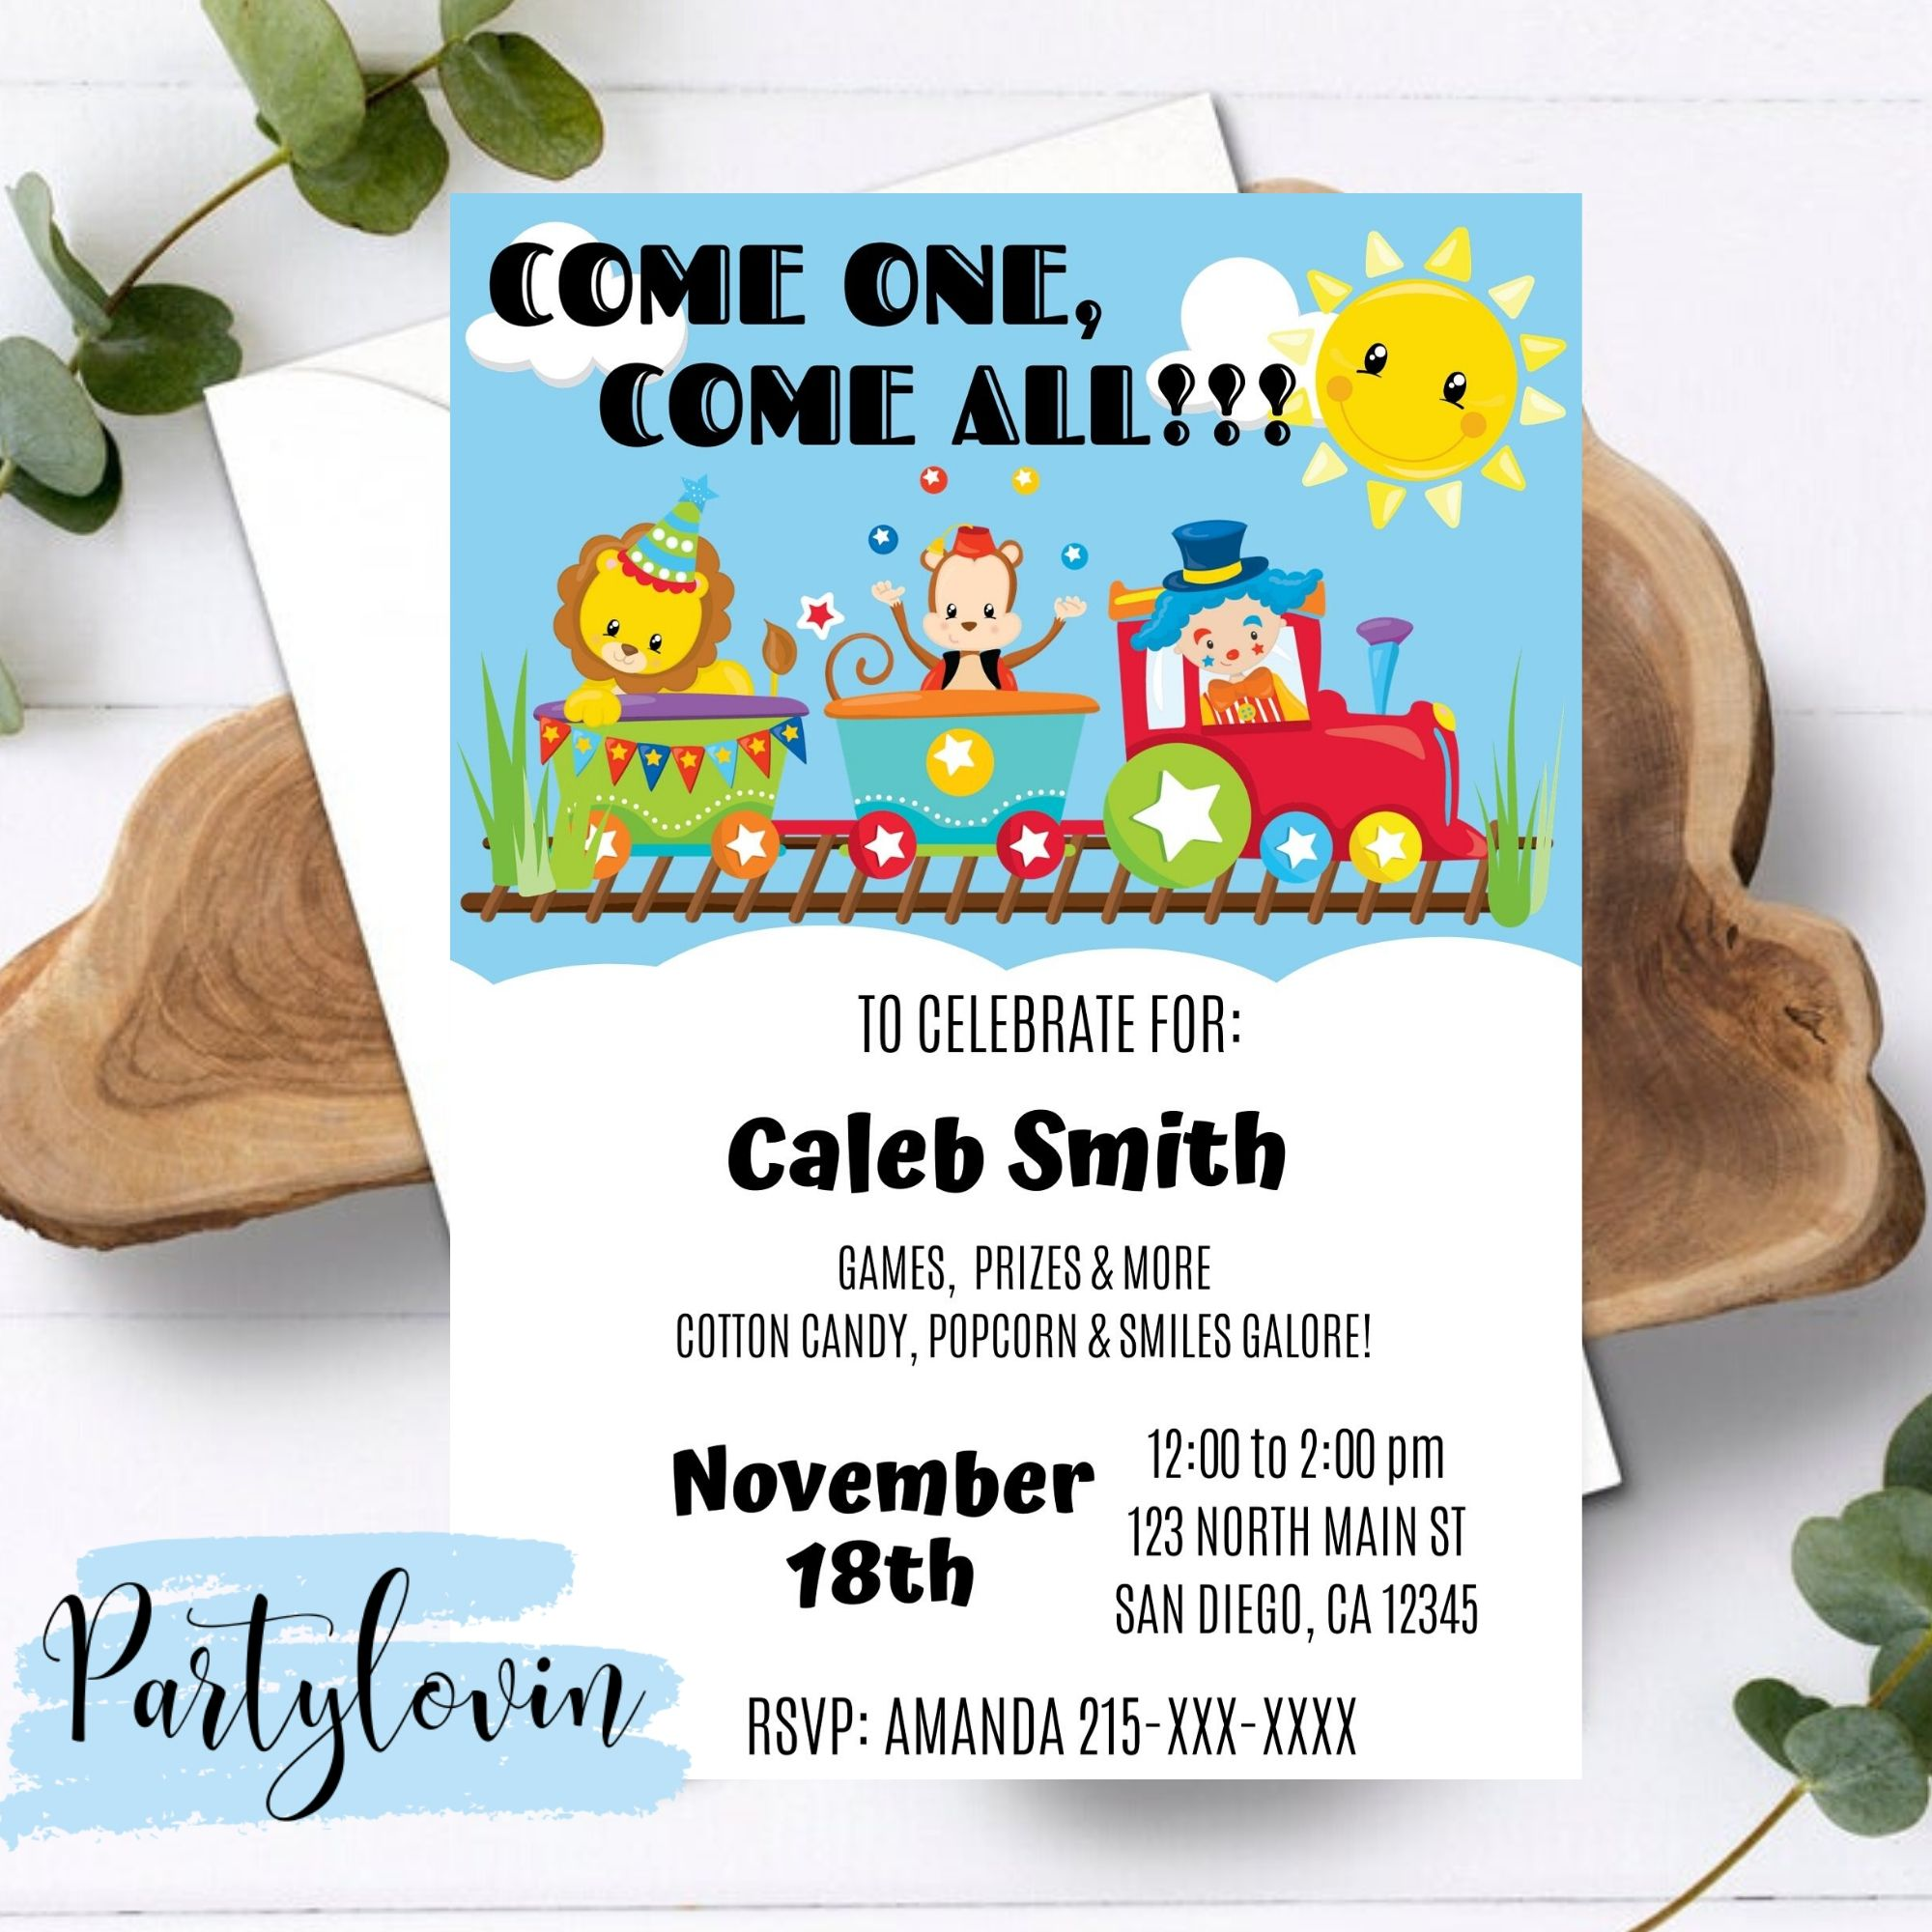 FREE PRINTABLE Come one, come all Birthday Party